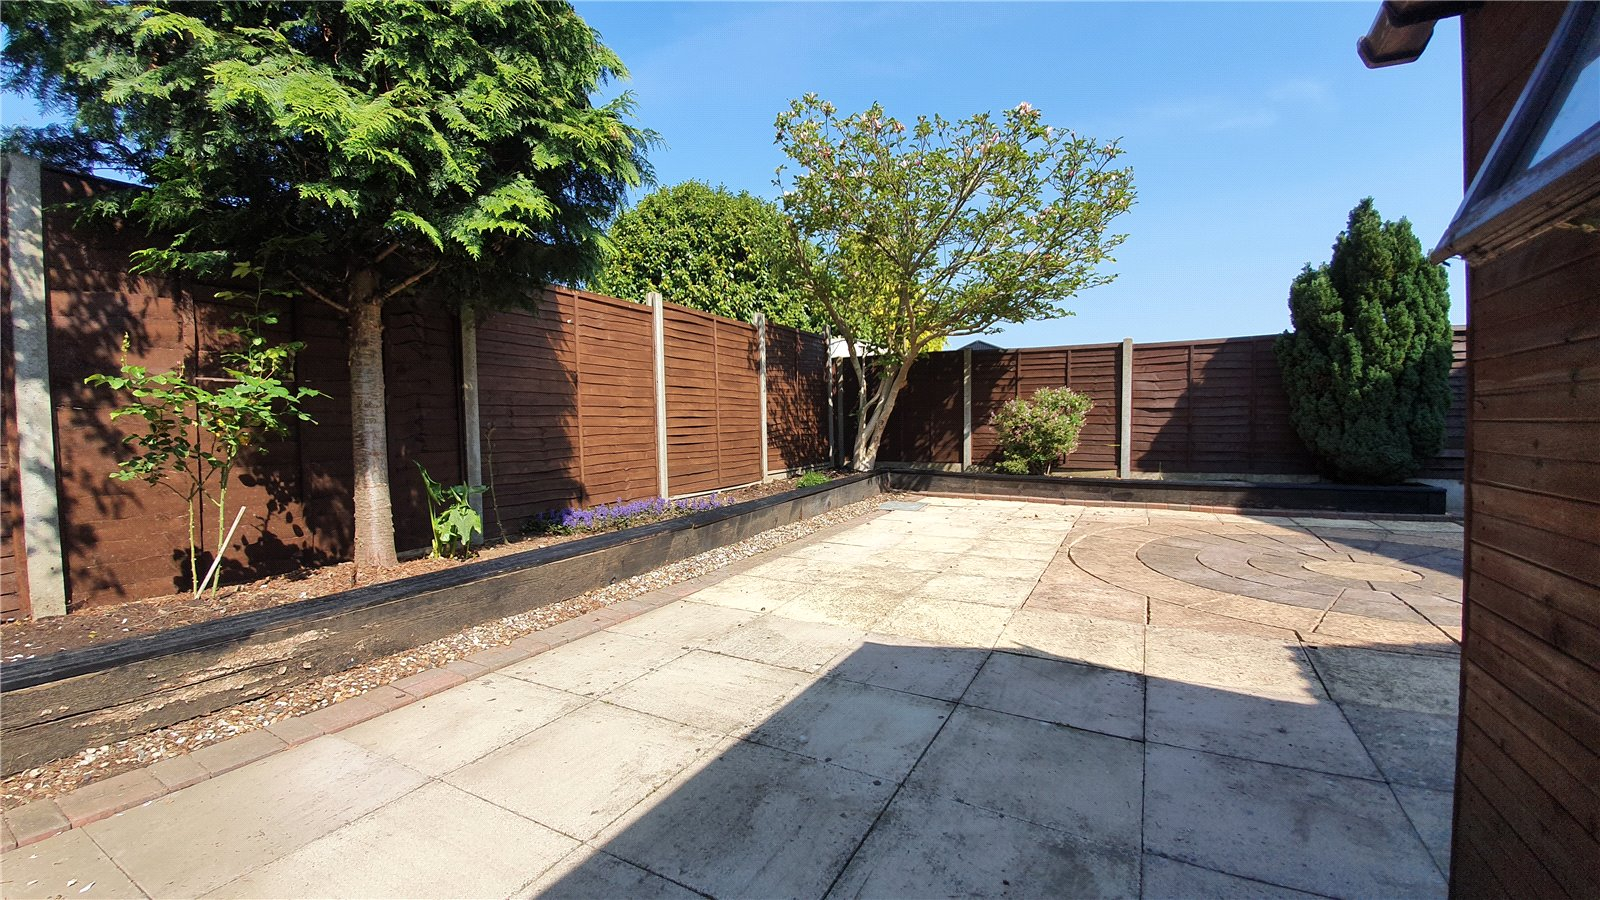 3 bed house for sale in Farm Close, Wyboston  - Property Image 10